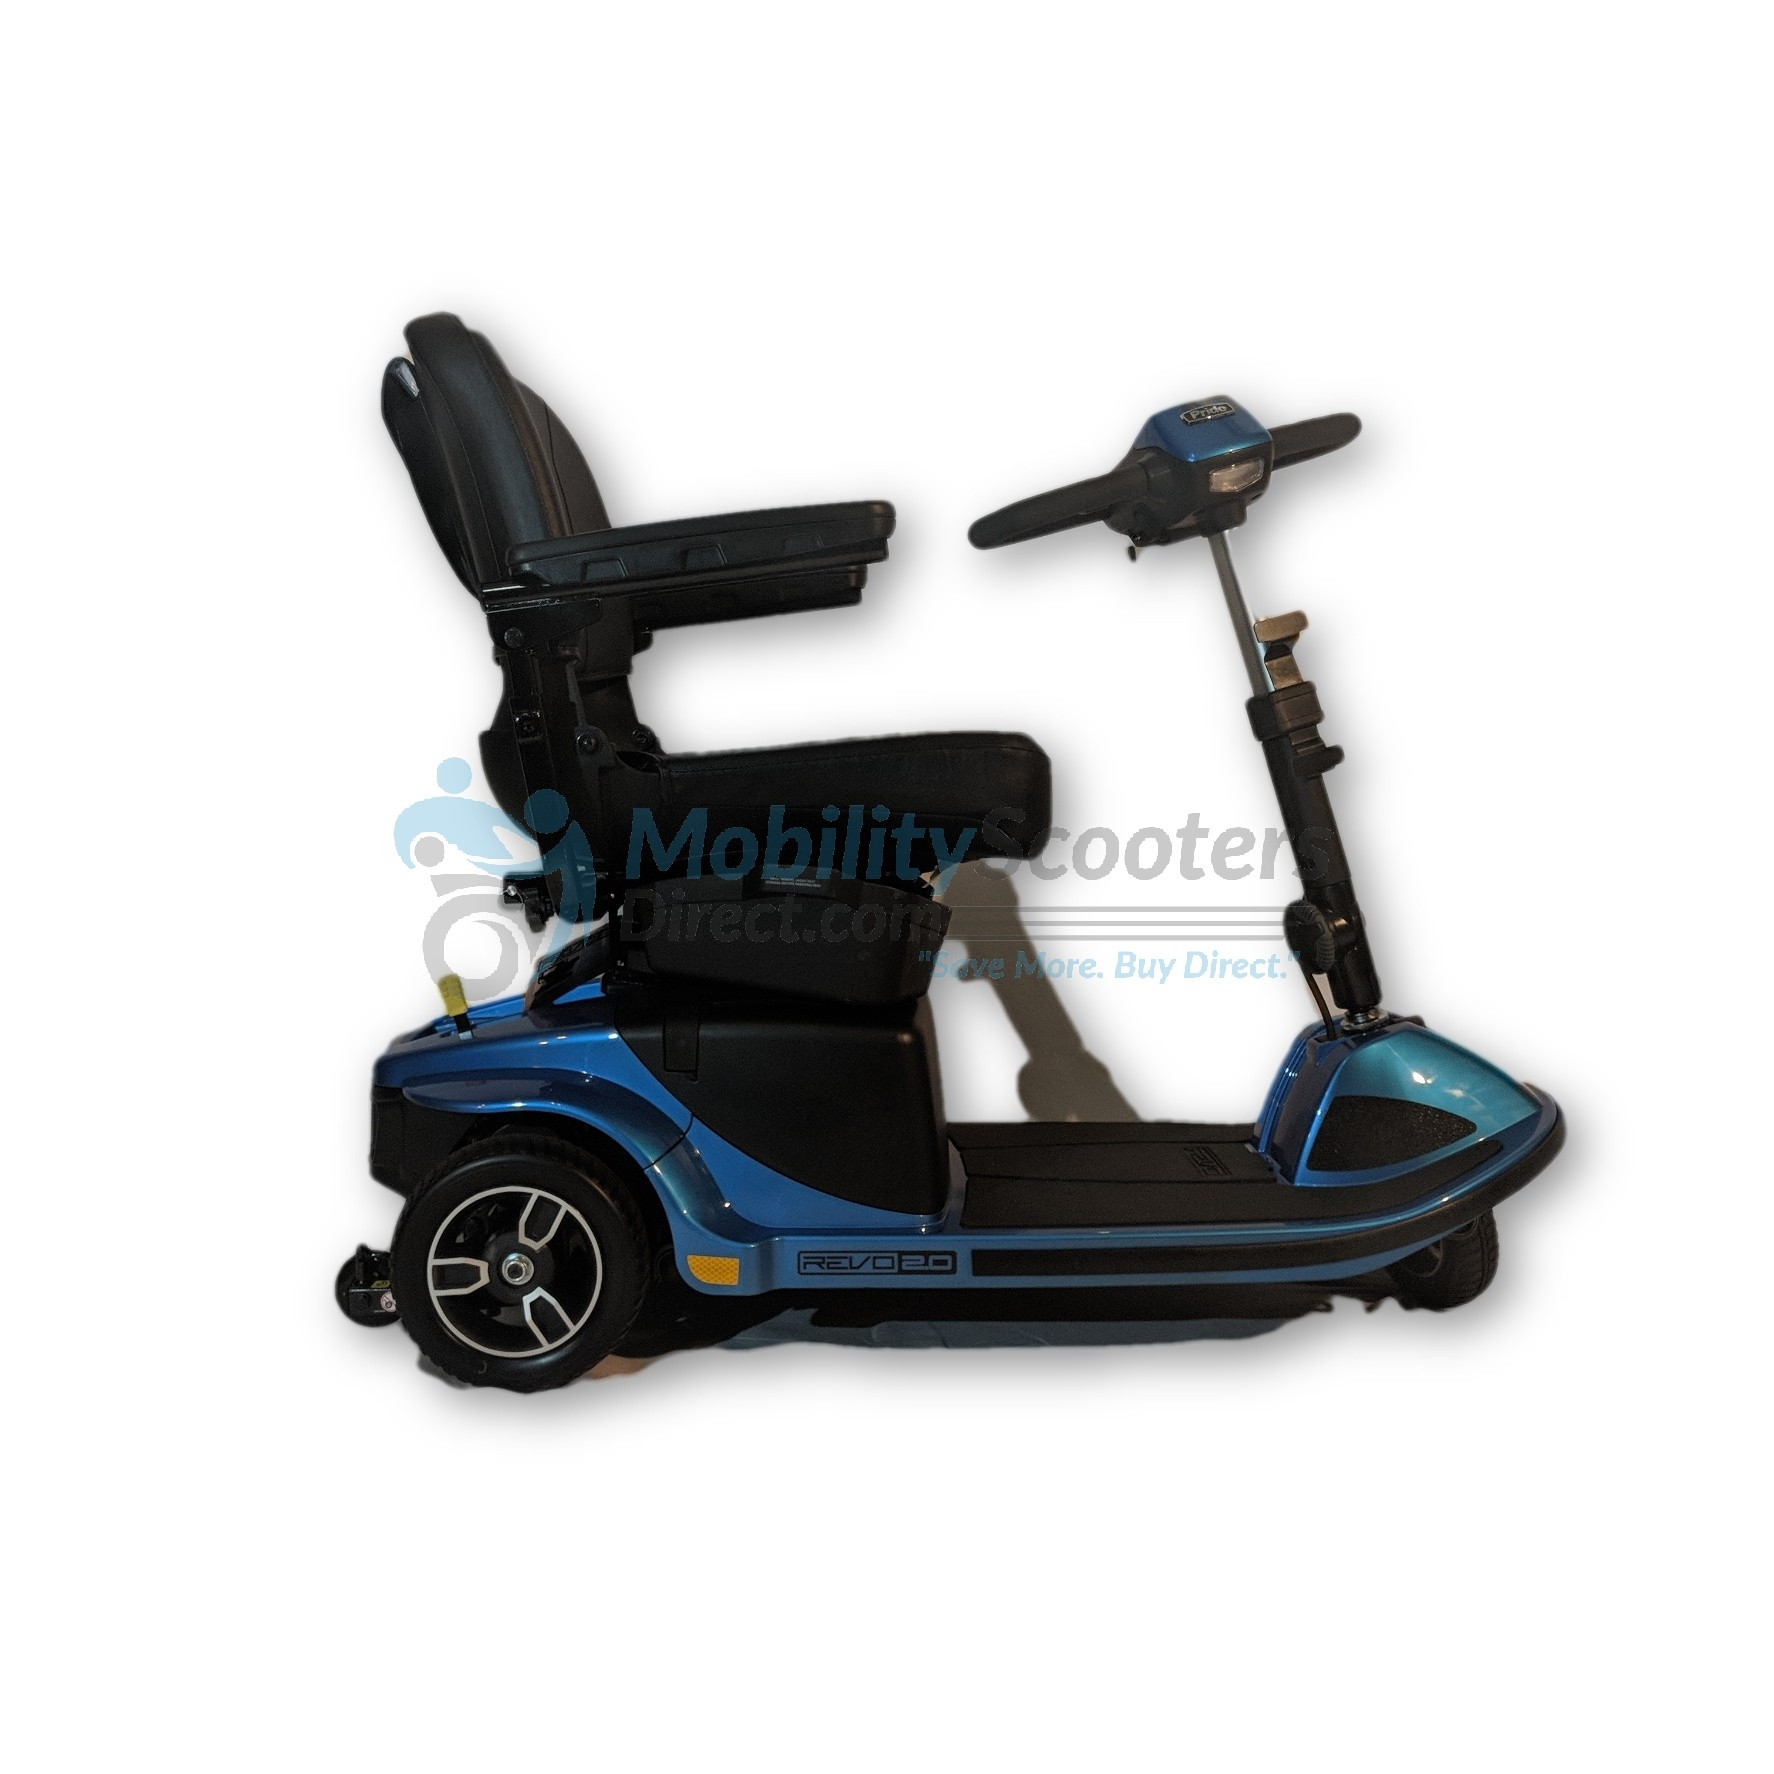 3 wheel revo 2 0 mobility scooter by pride mobility for. Black Bedroom Furniture Sets. Home Design Ideas